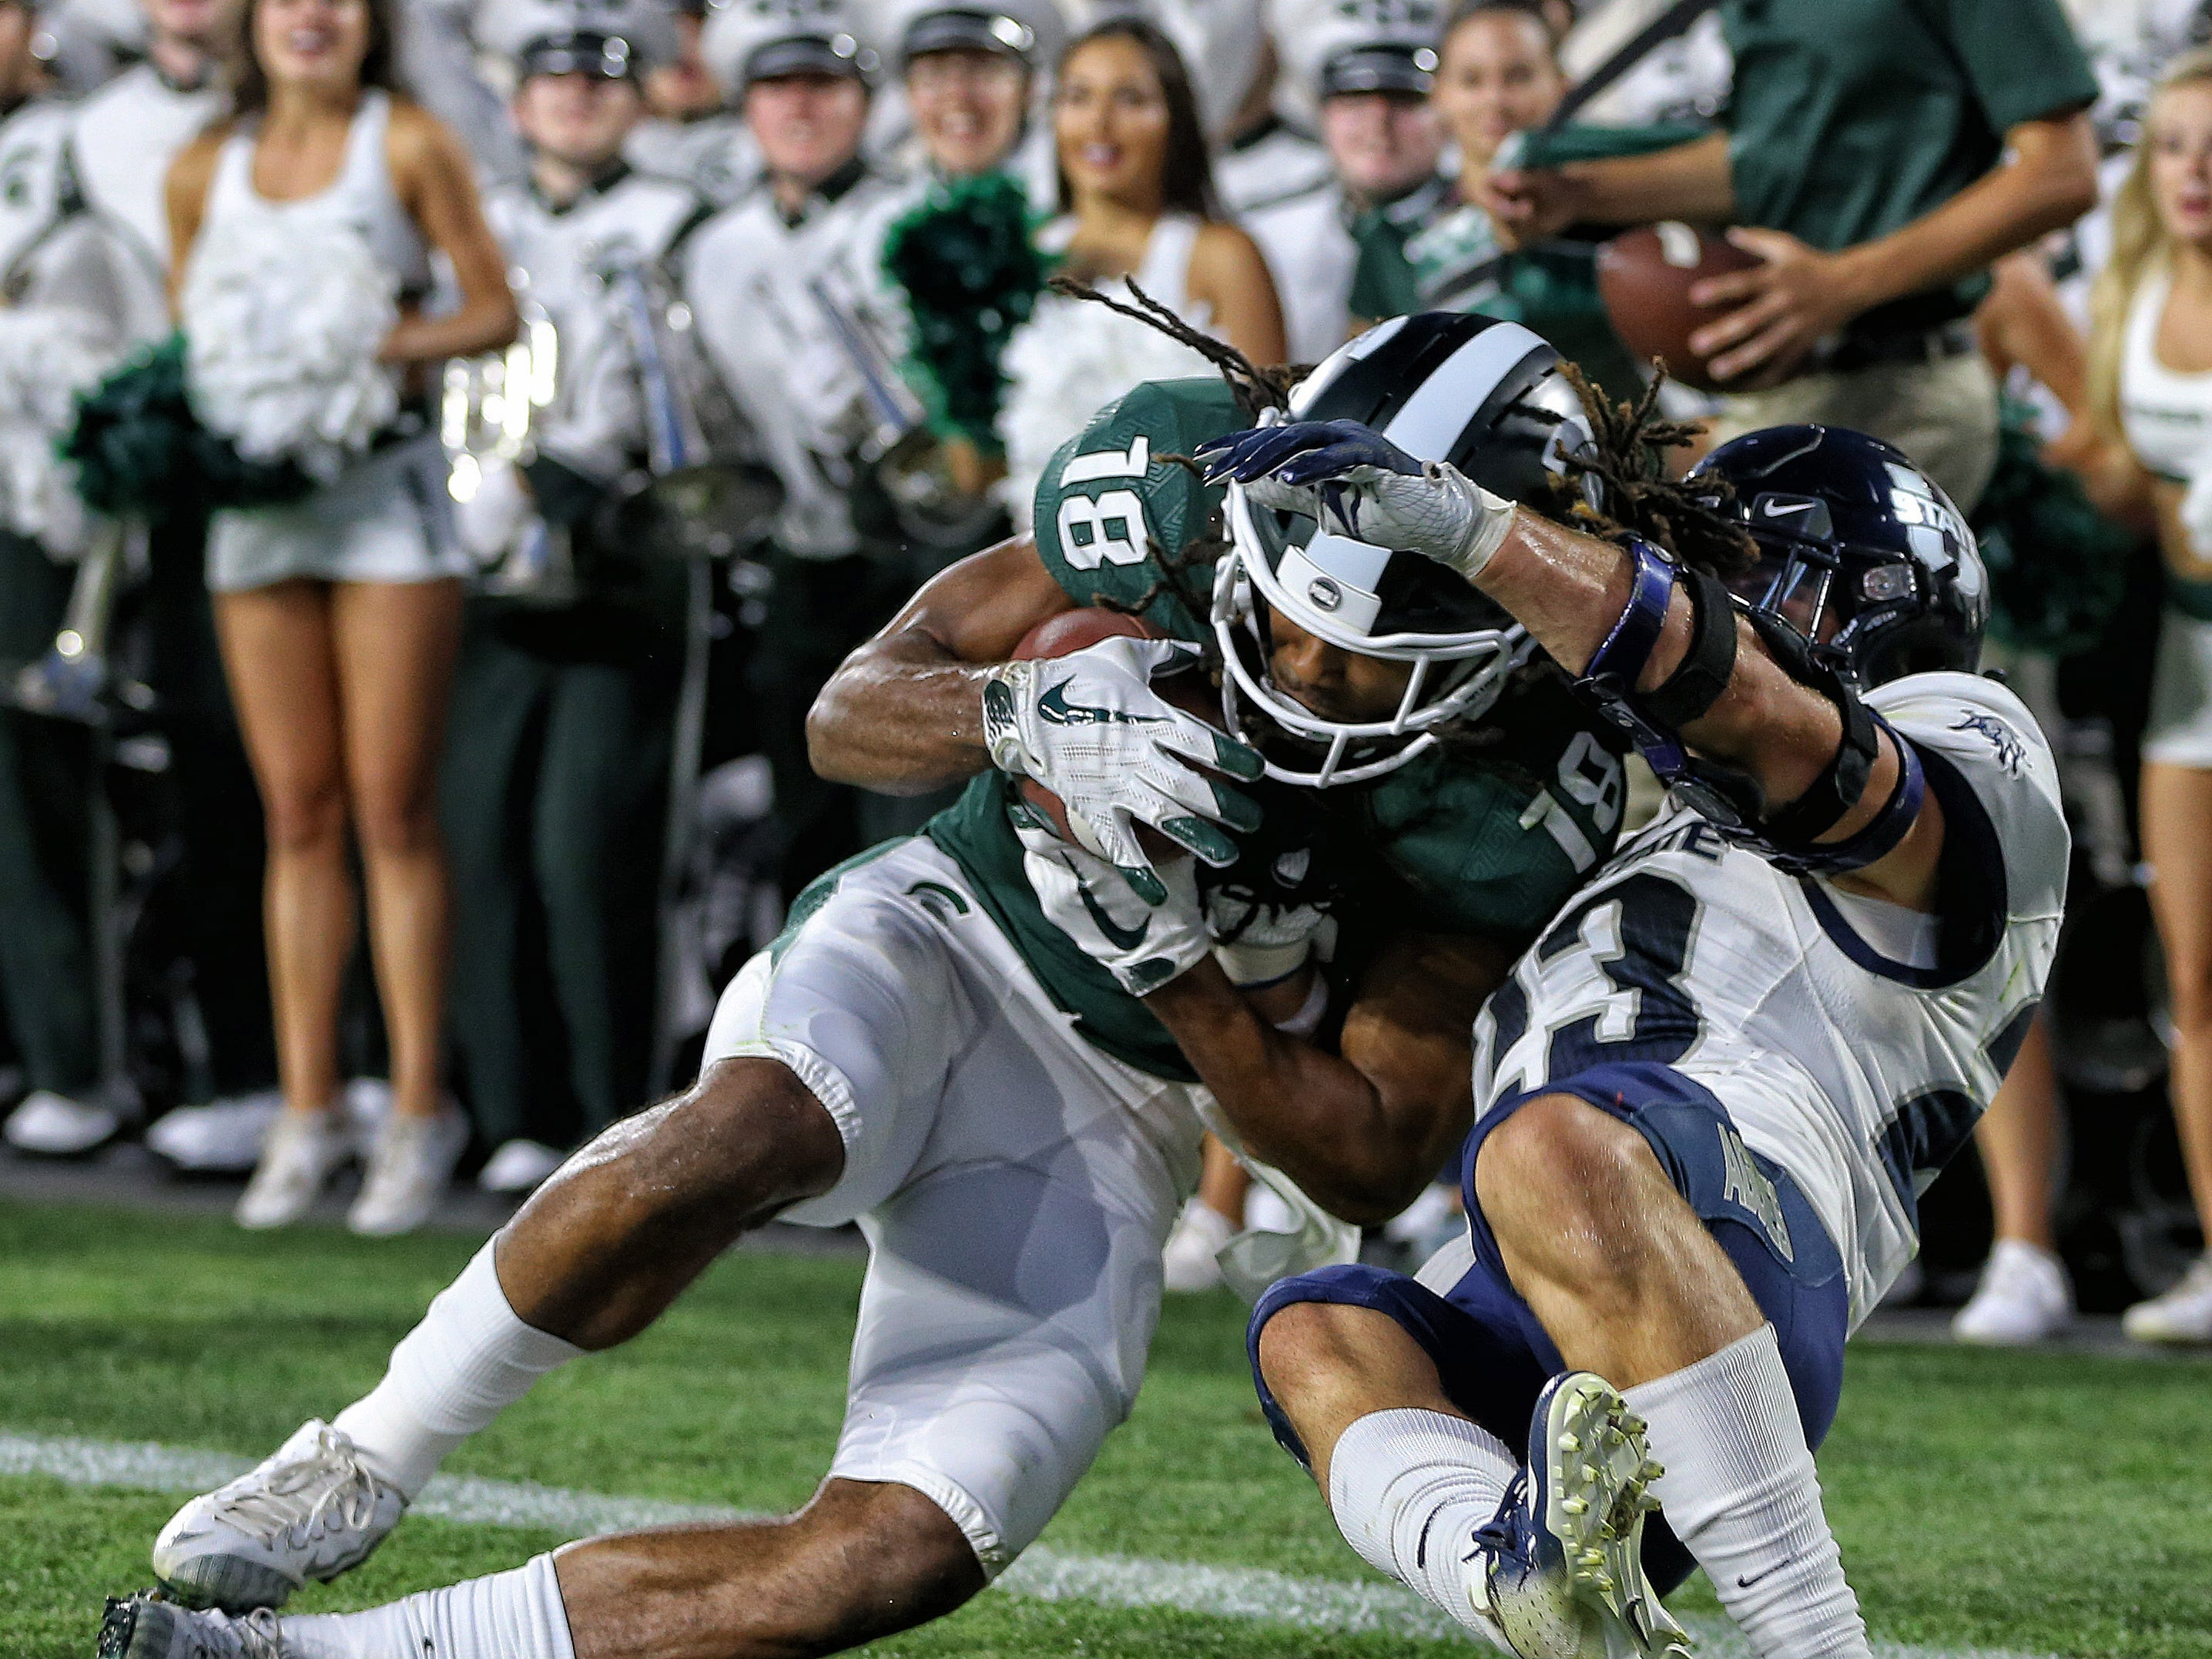 Michigan State Spartans wide receiver Felton Davis III (18) cathes a touchdown against Utah State Aggies safety Gaje Ferguson (23) during the first half.